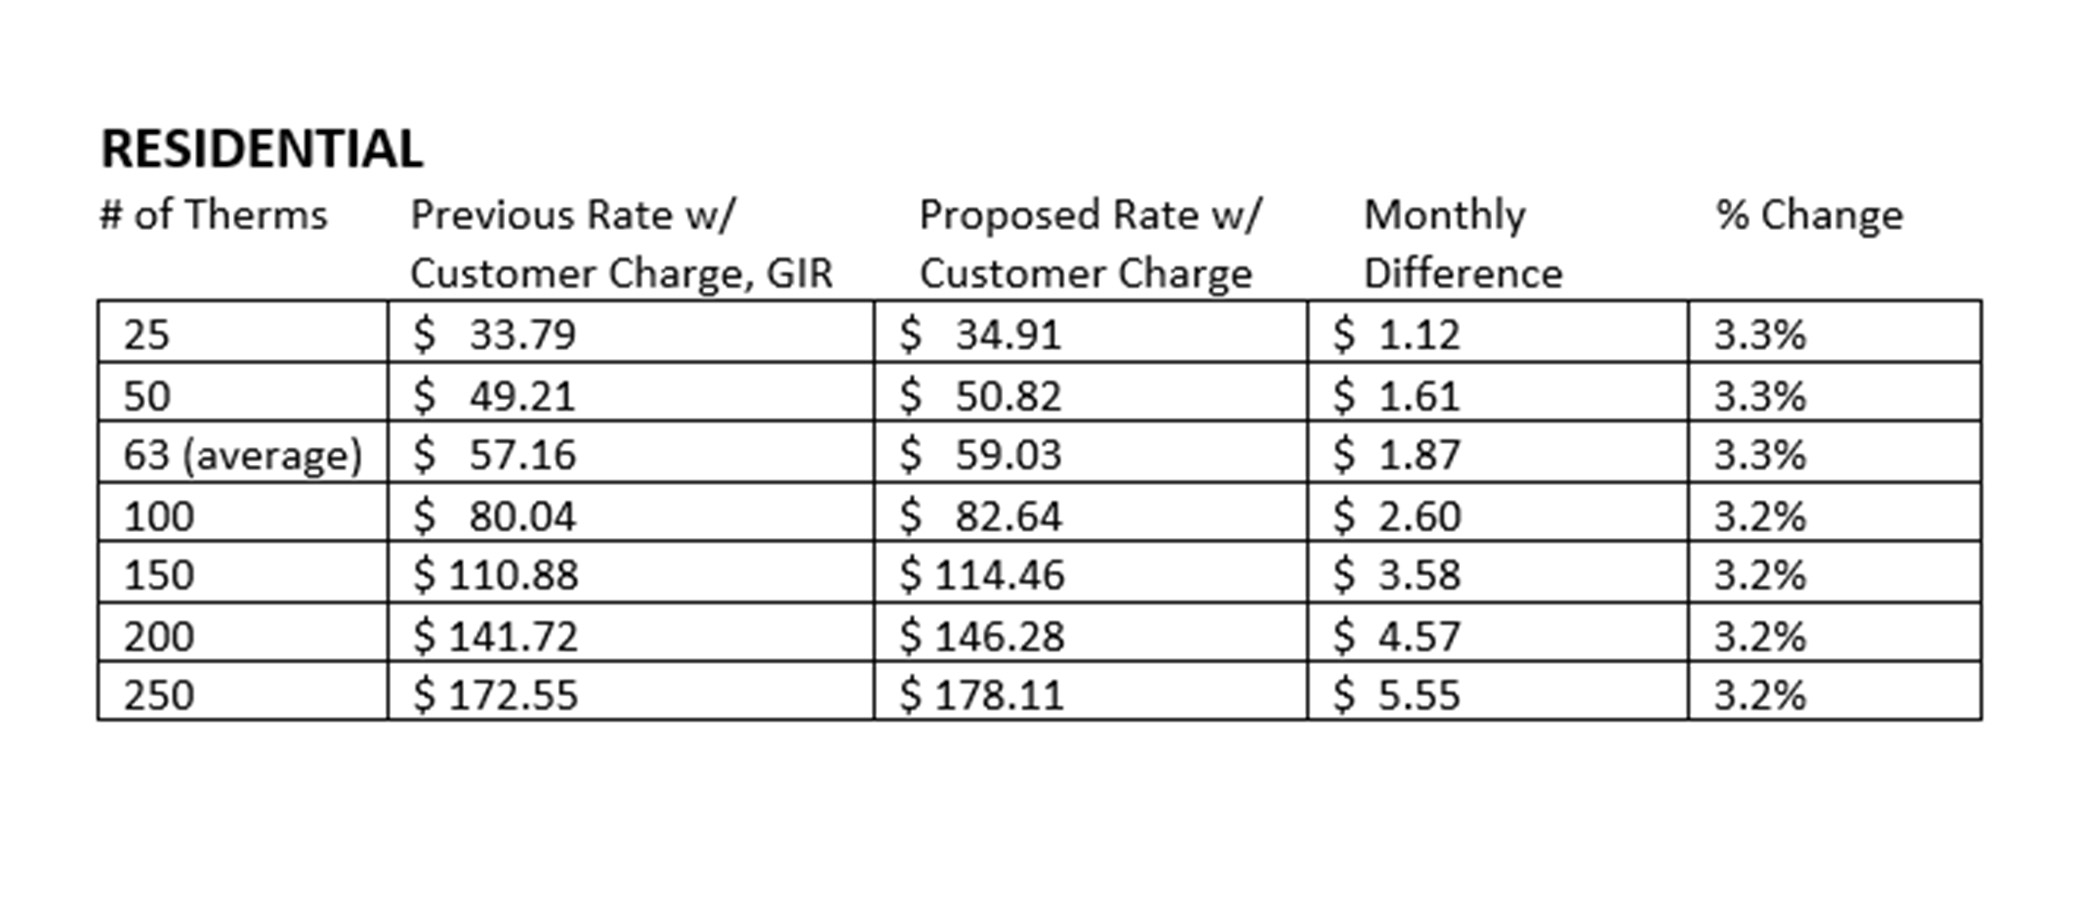 A chart showing bill impacts of a natural gas rate change on residential customers.